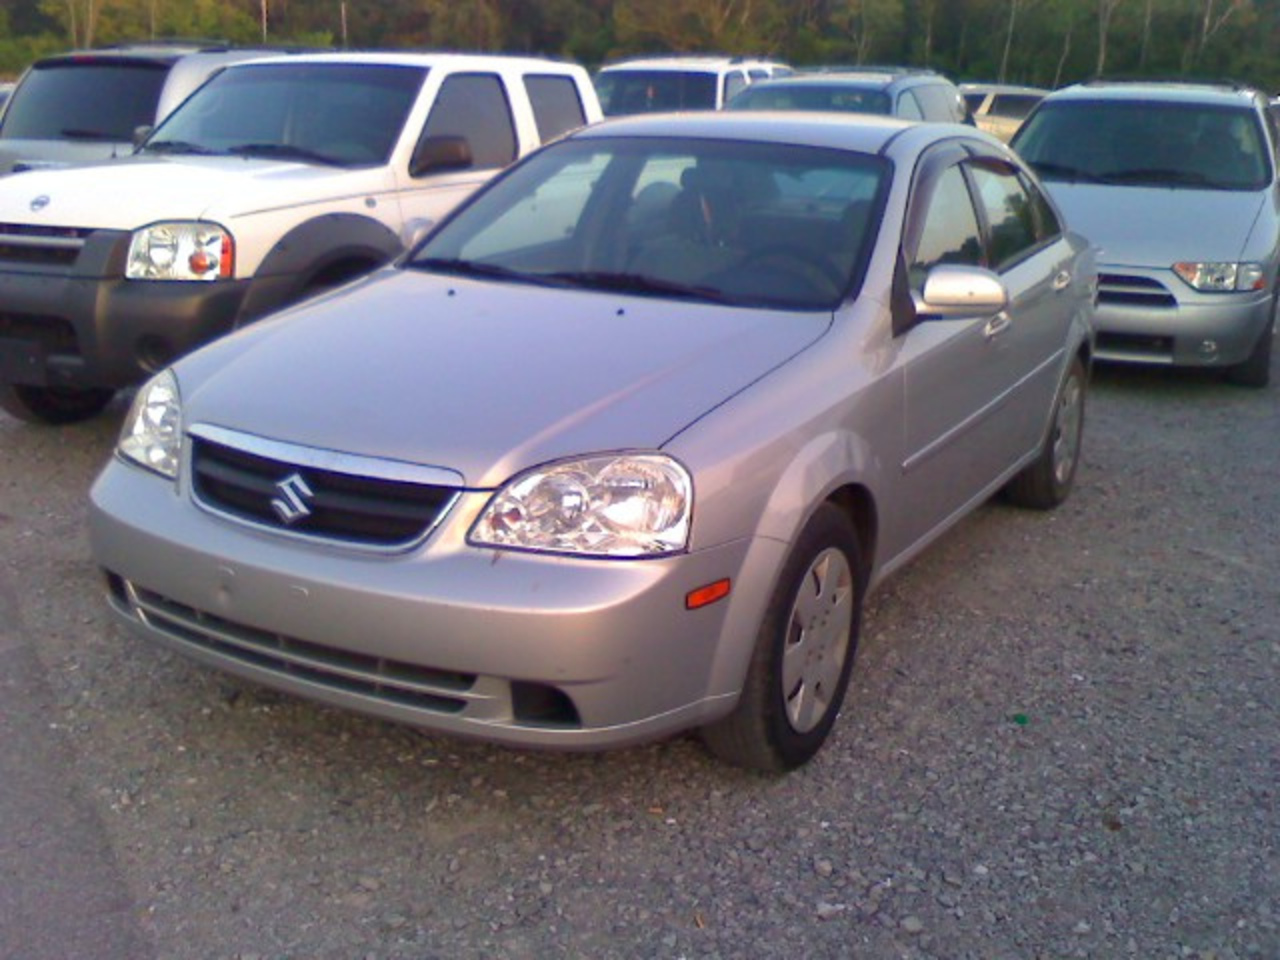 North American market Suzuki Forenza (or Chevy Lacetti for you Top ...